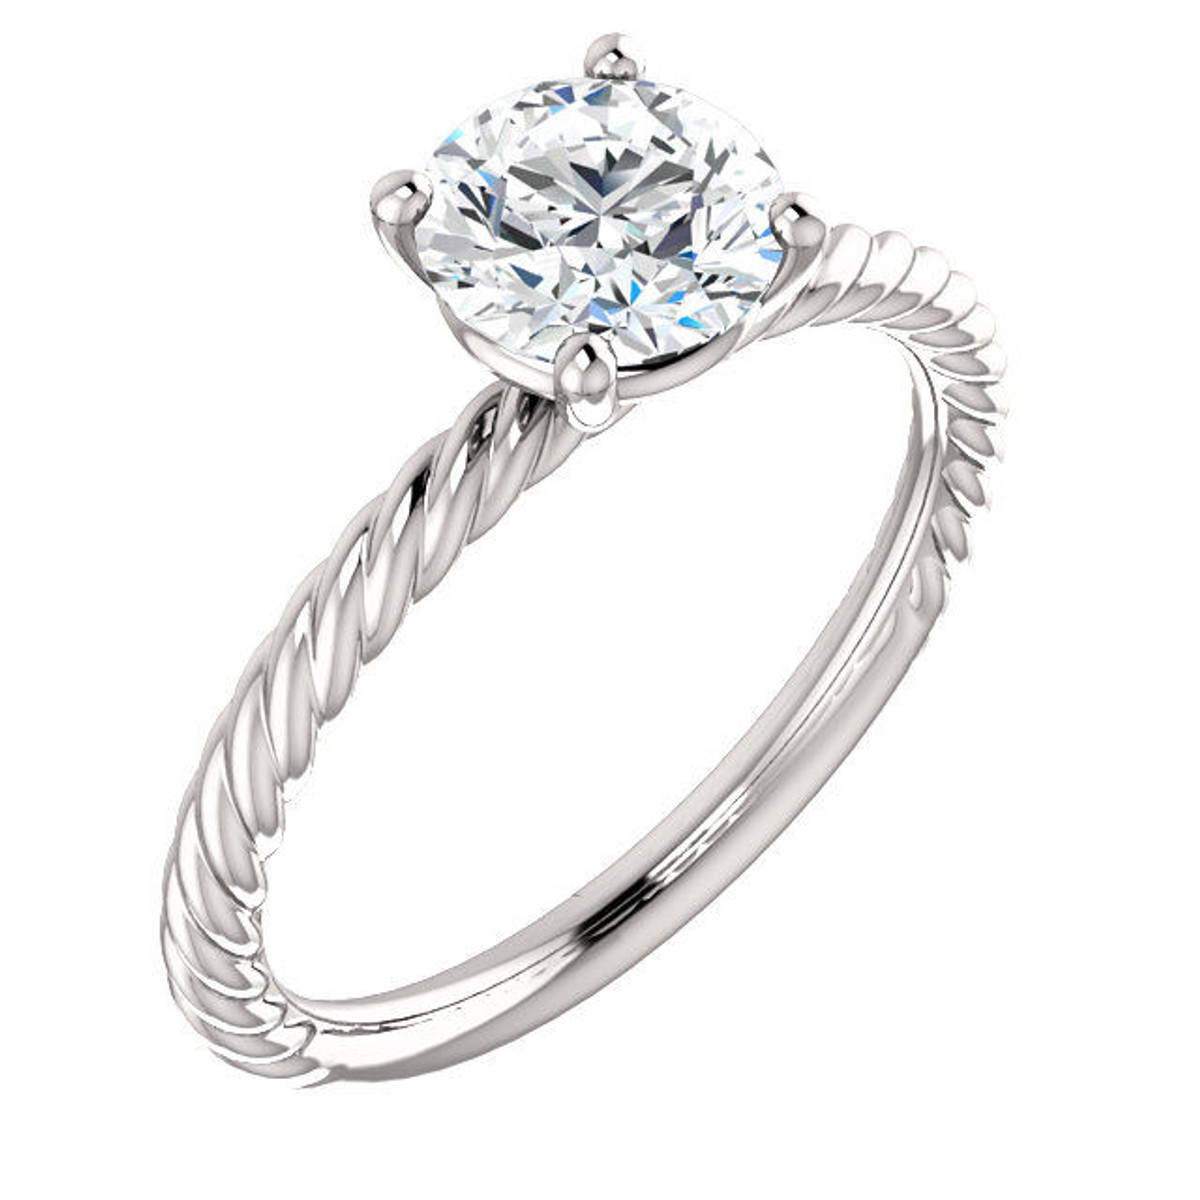 14Kt White Gold Rope Engagement Ring